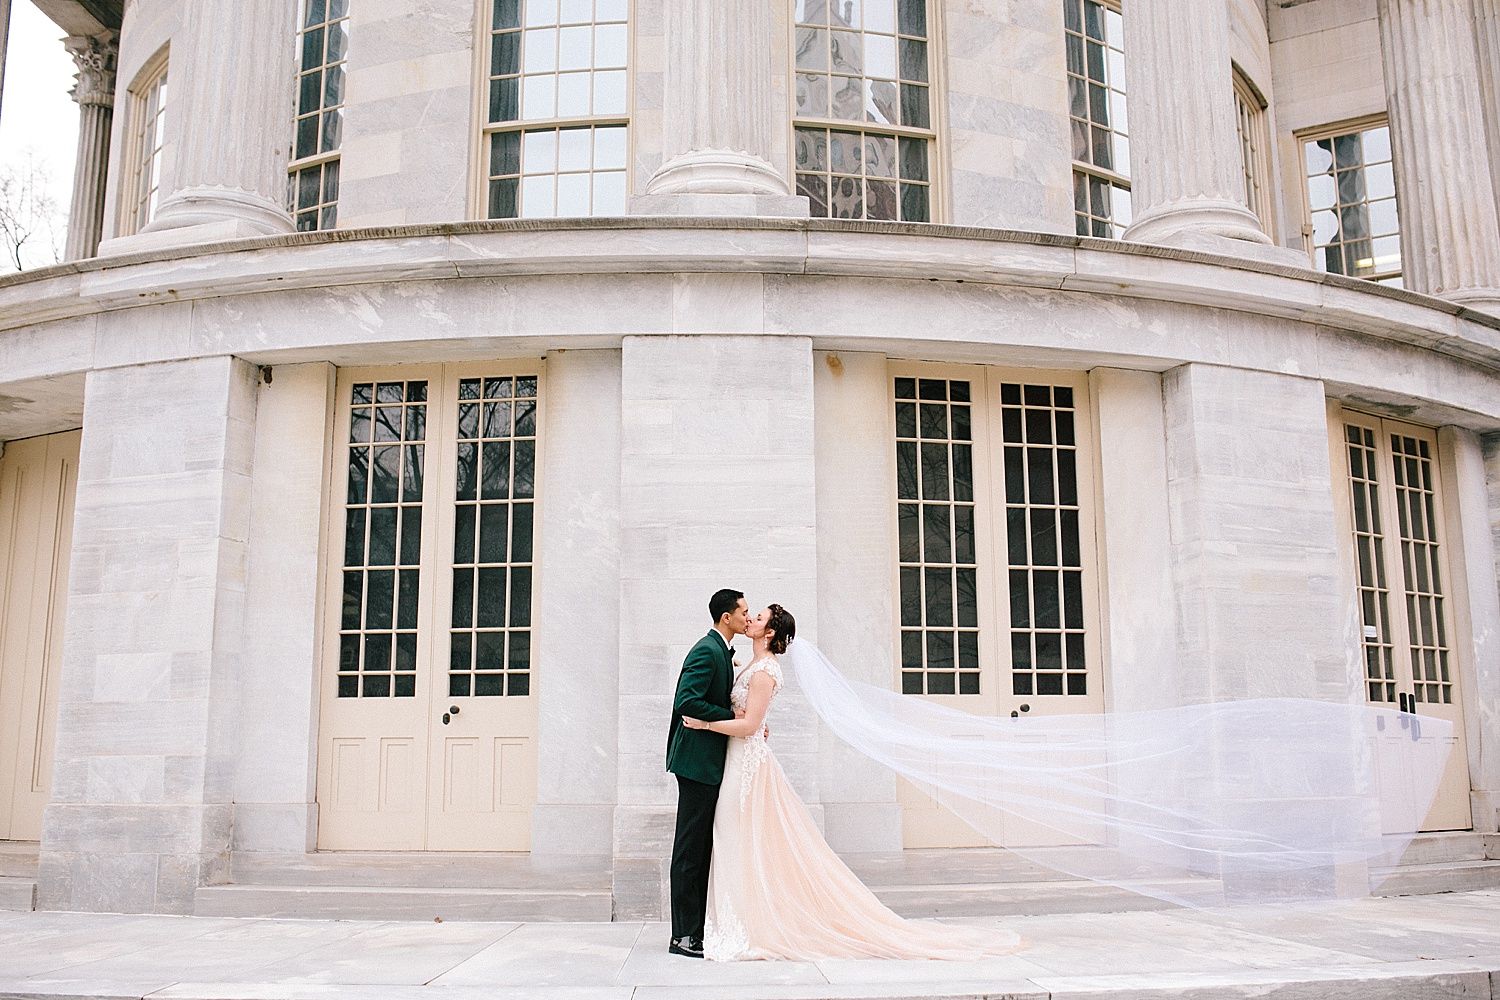 kirstentony_uniontrust_finleycatering_christchurch_philadelphia_wedding_image_0698.jpg